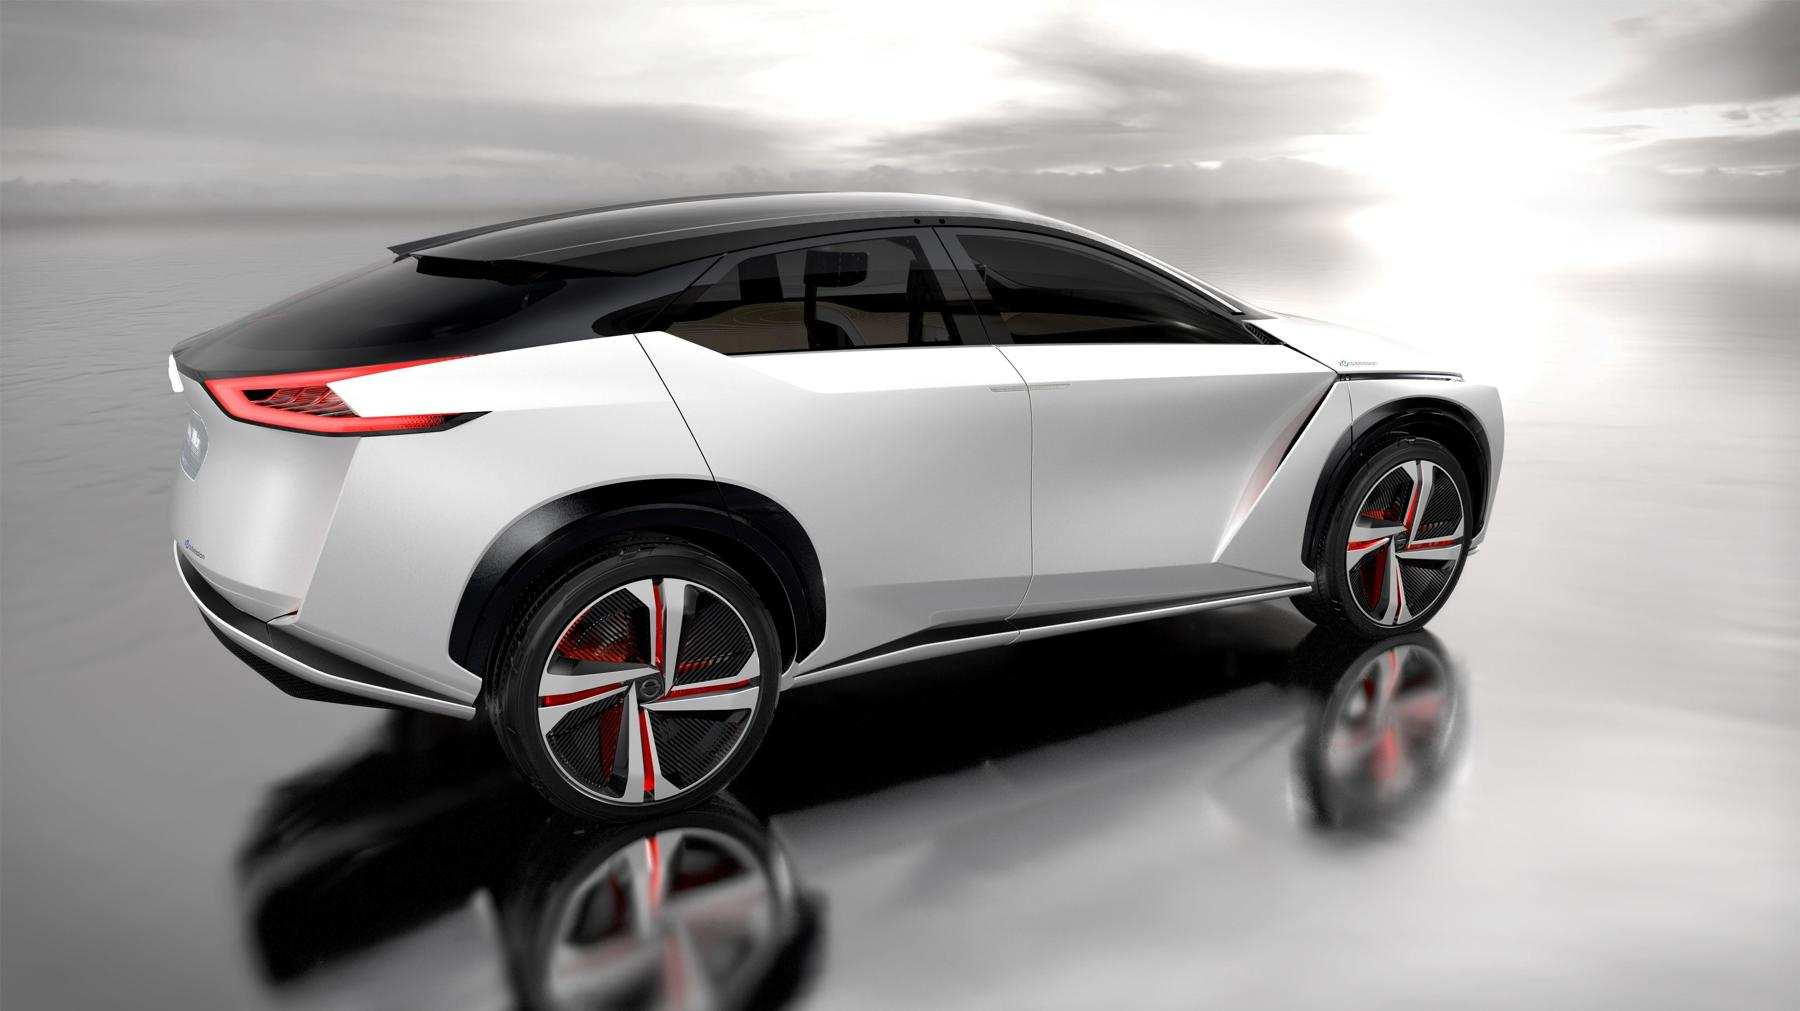 57 Best Review Nissan Concept 2020 Suv Concept by Nissan Concept 2020 Suv